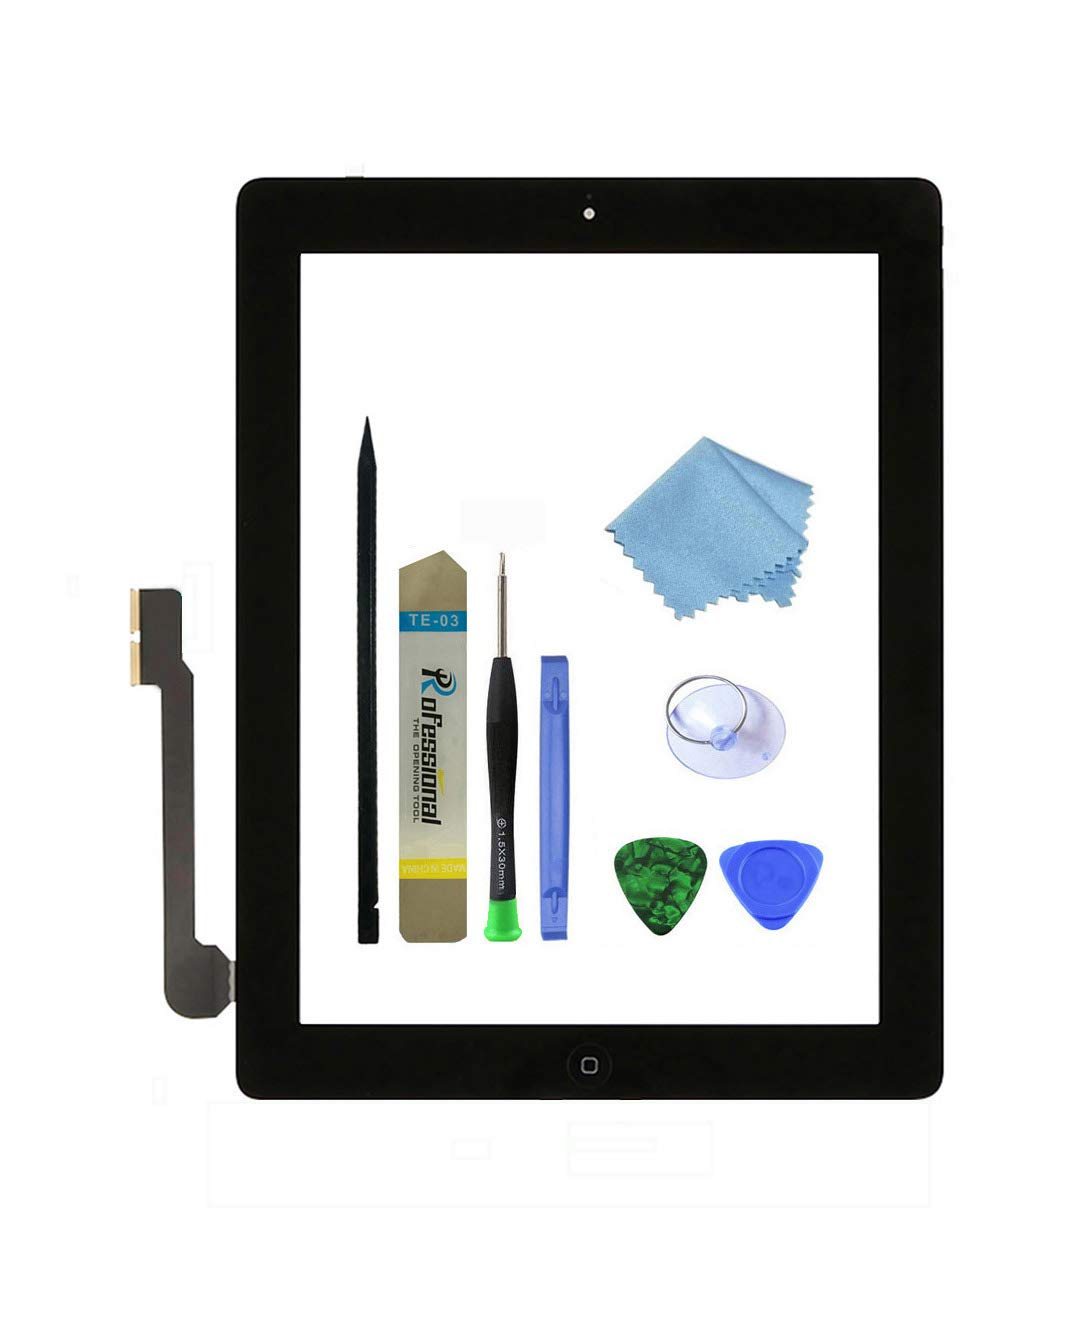 Zentop Touch Screen Digitizer replacement Assembly for Black iPad 3 Model A1403, A1416, A1430 whit Home Button, Camera Holder ,Preinstalled Adhesive,Frame Bezel, tool Kit. by Zentop